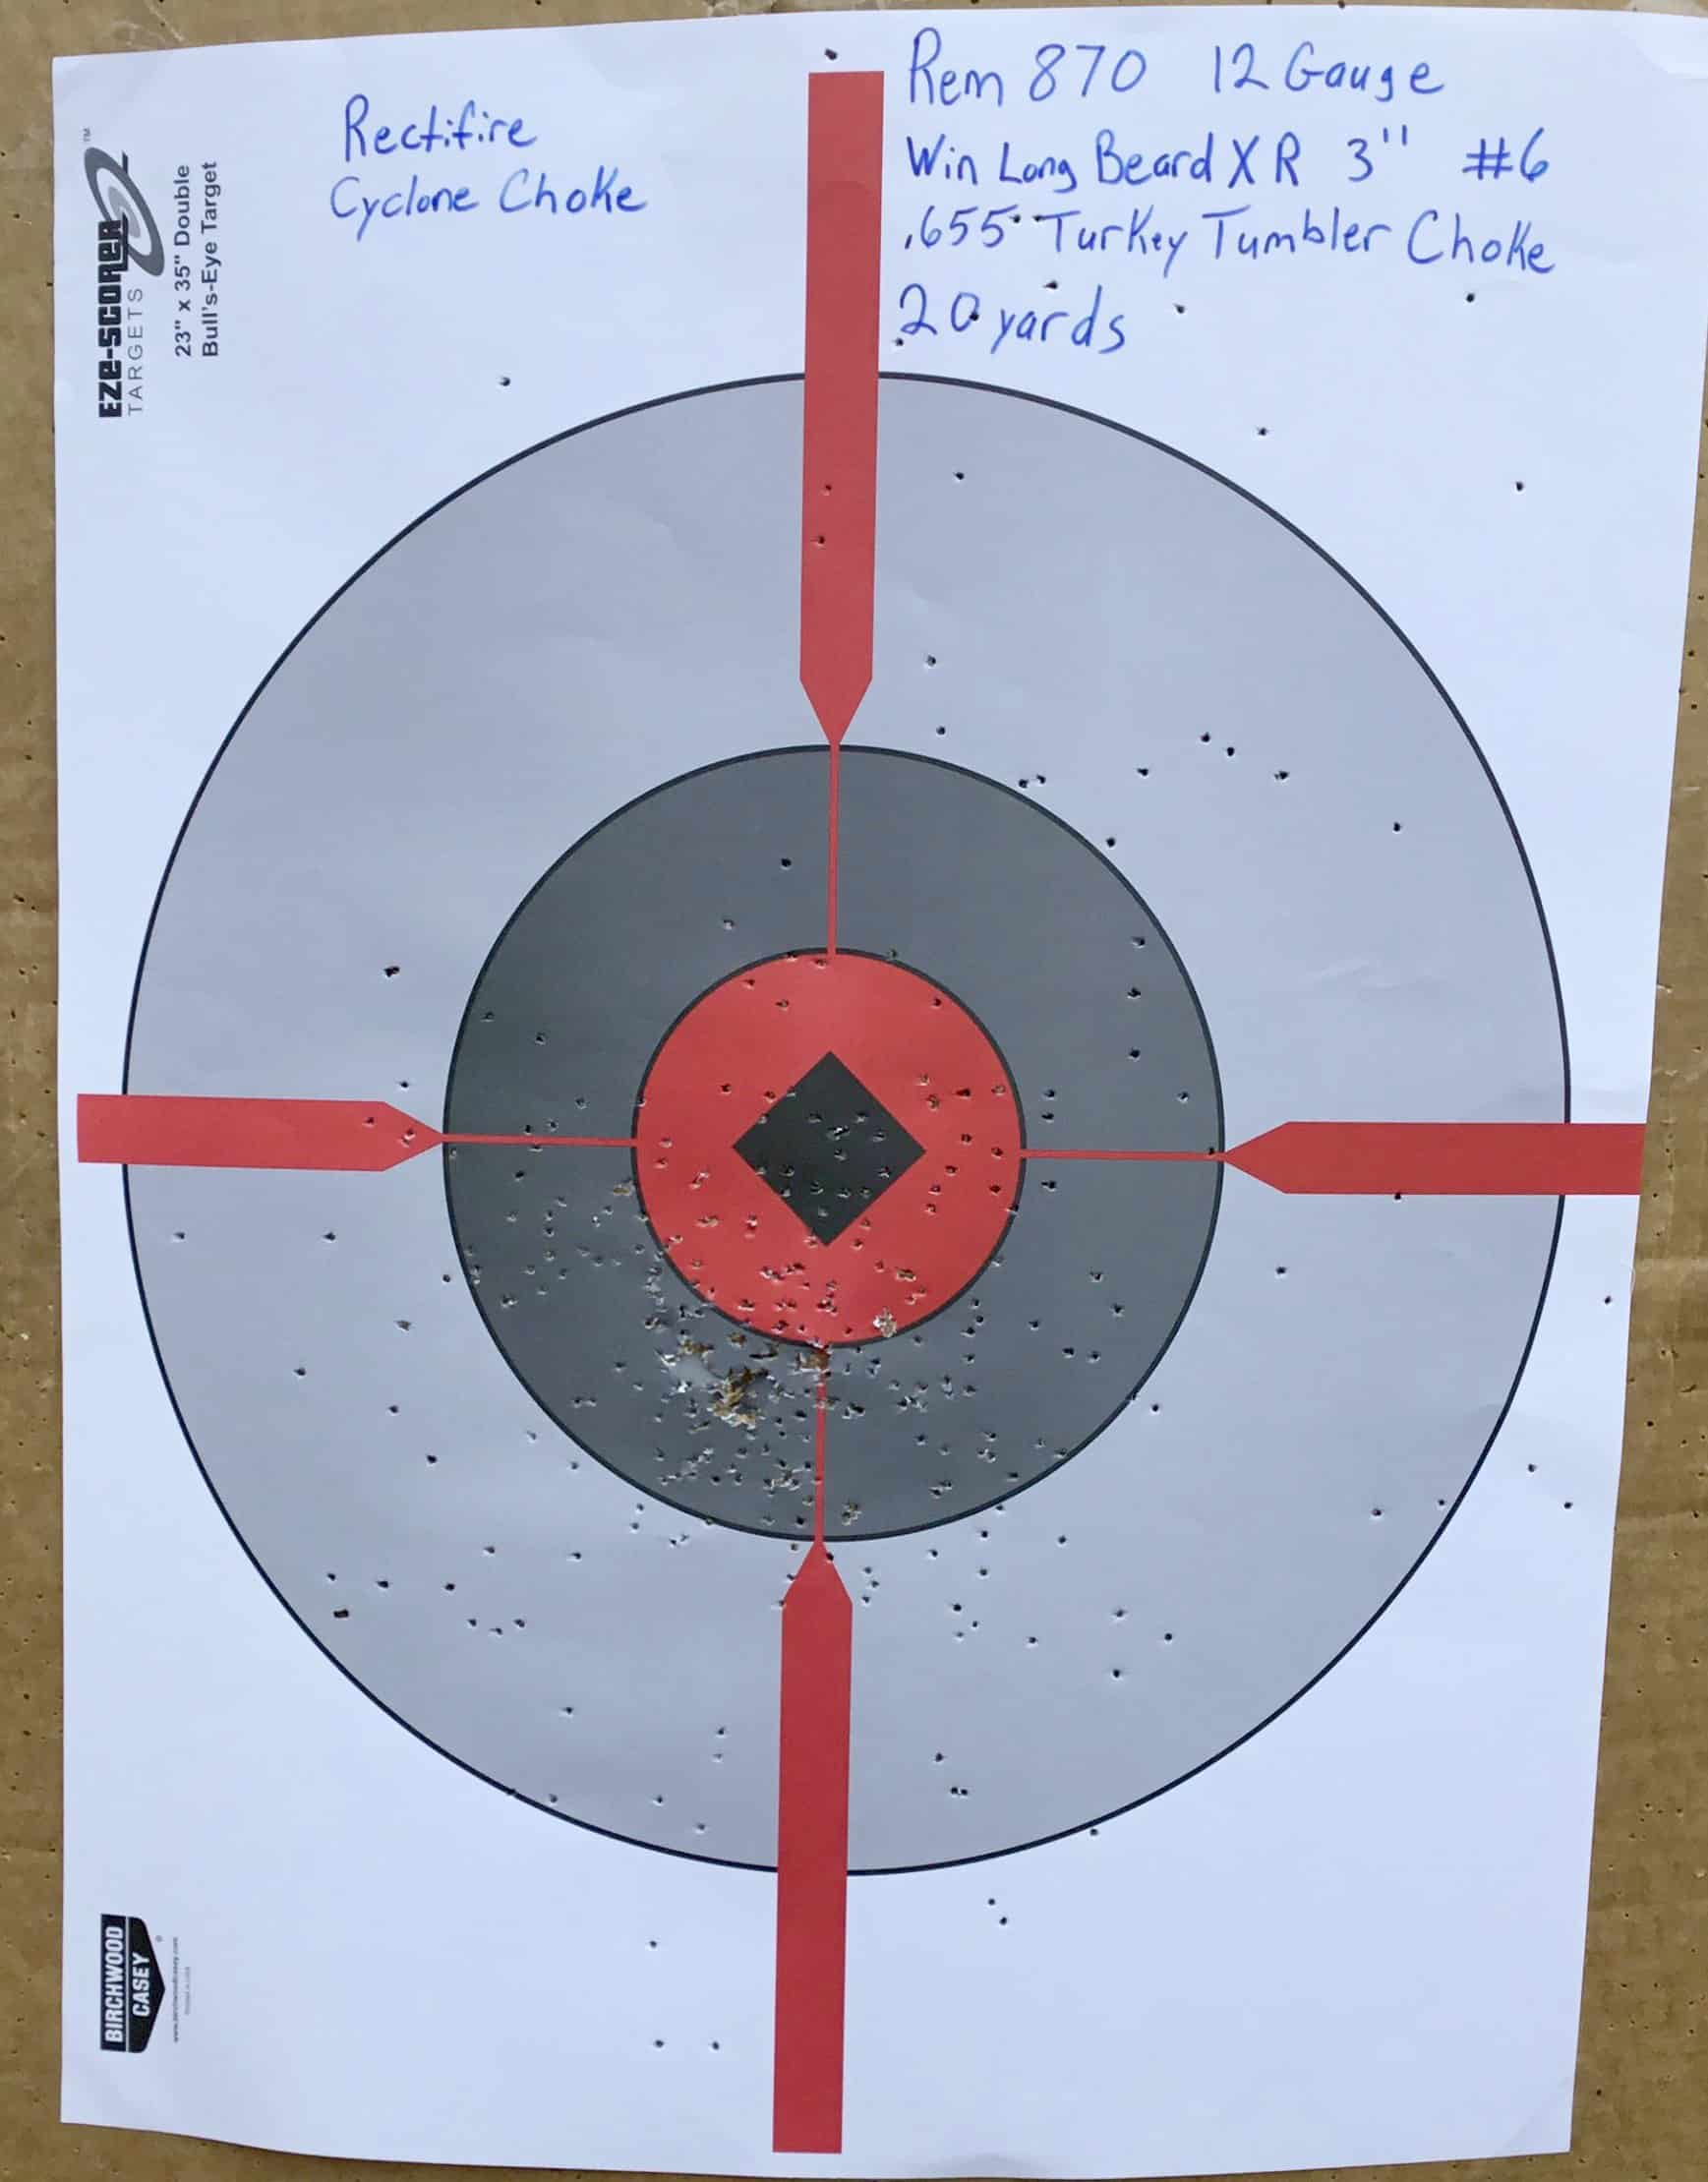 Remington 870 12 Gauge @ 20 yds.